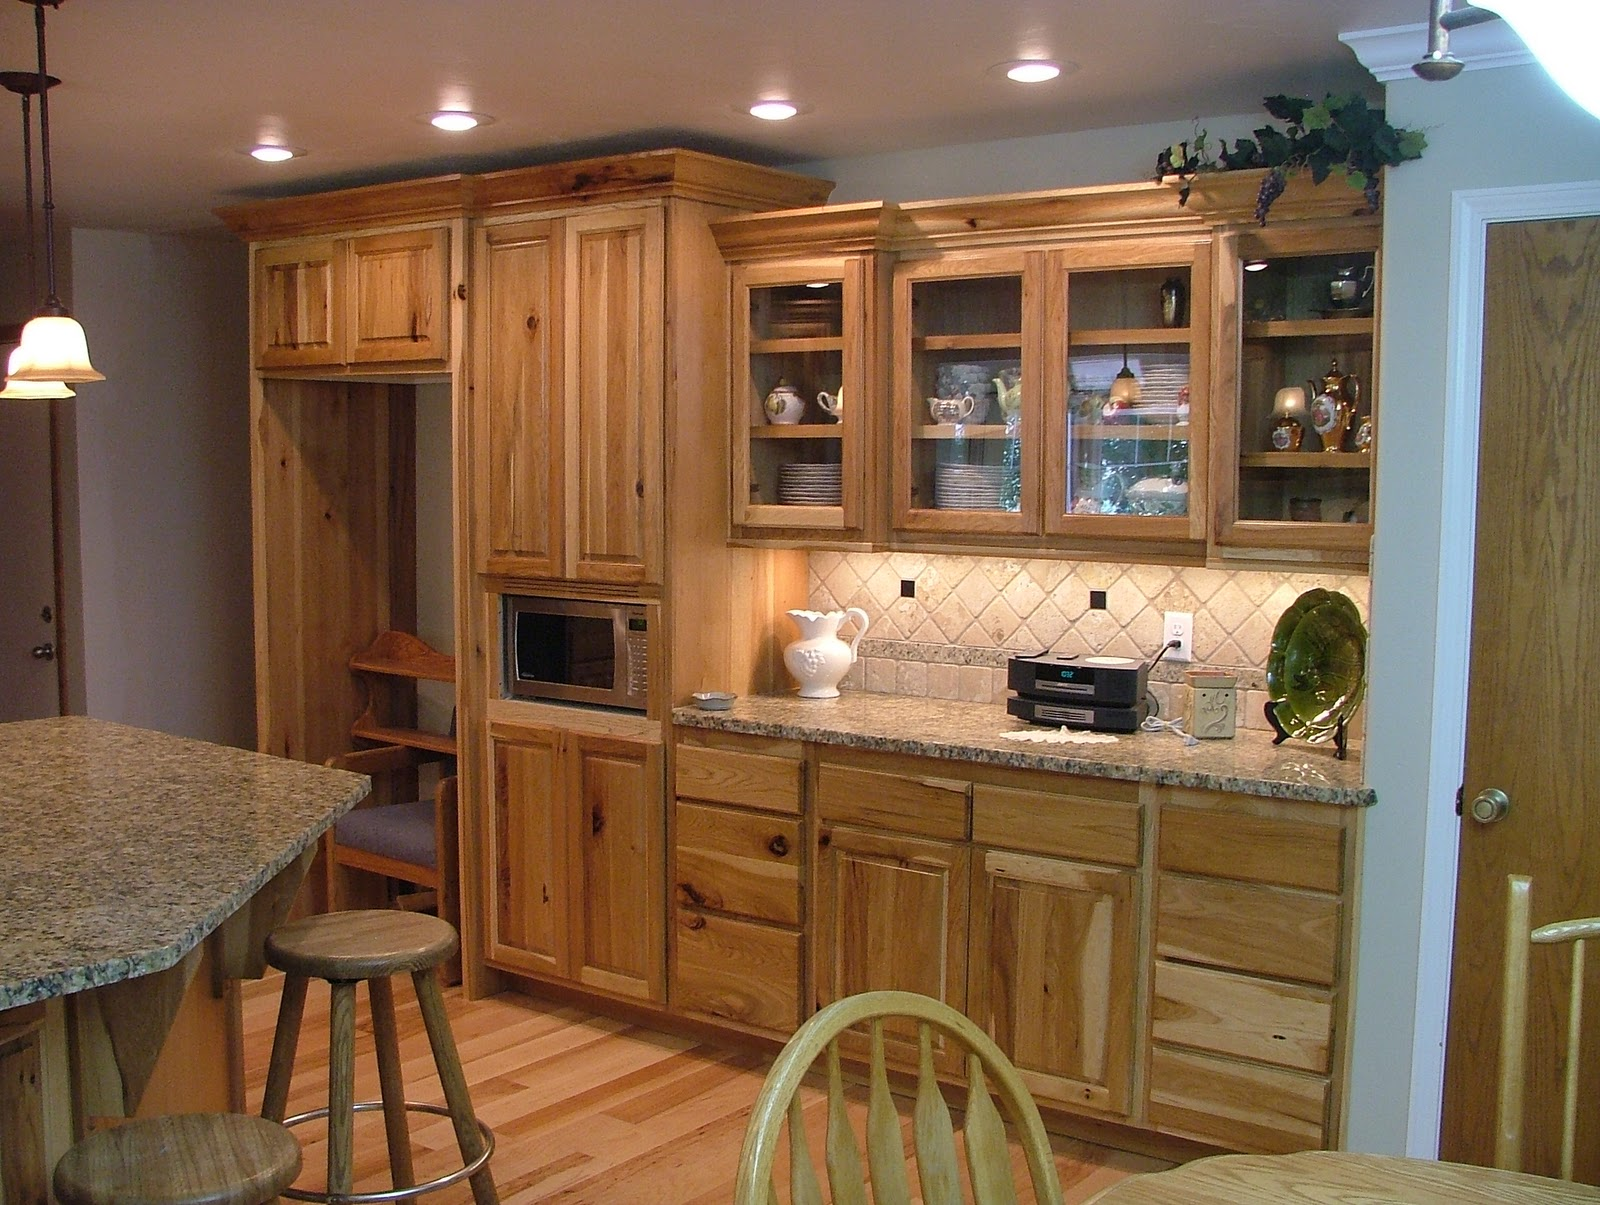 King Cabinets & Woodworks: Kitchens